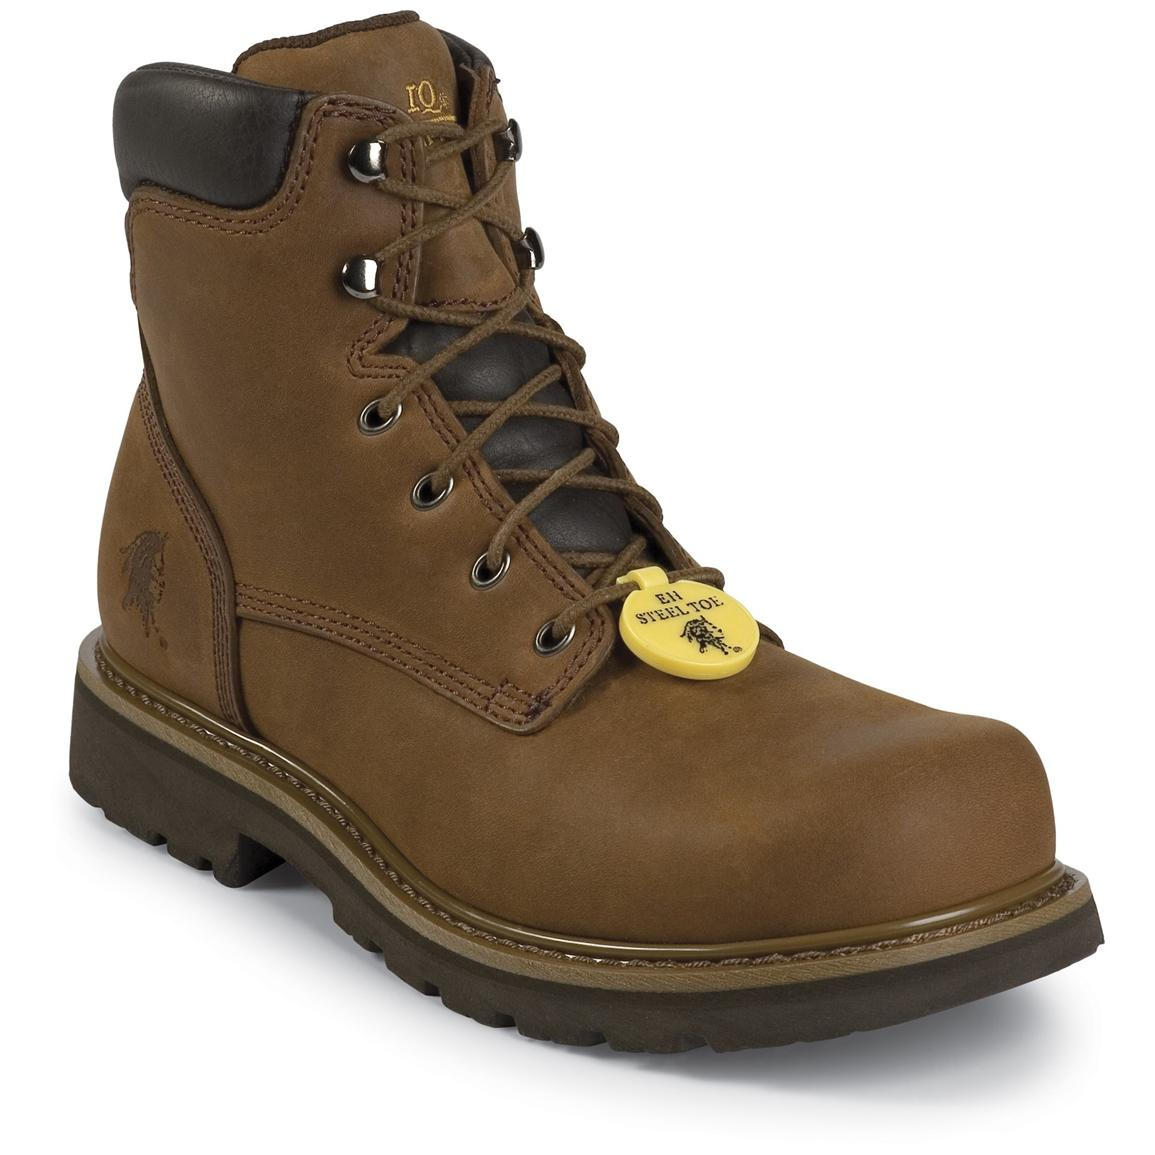 Men's Chippewa® Steel Toe Work Boots